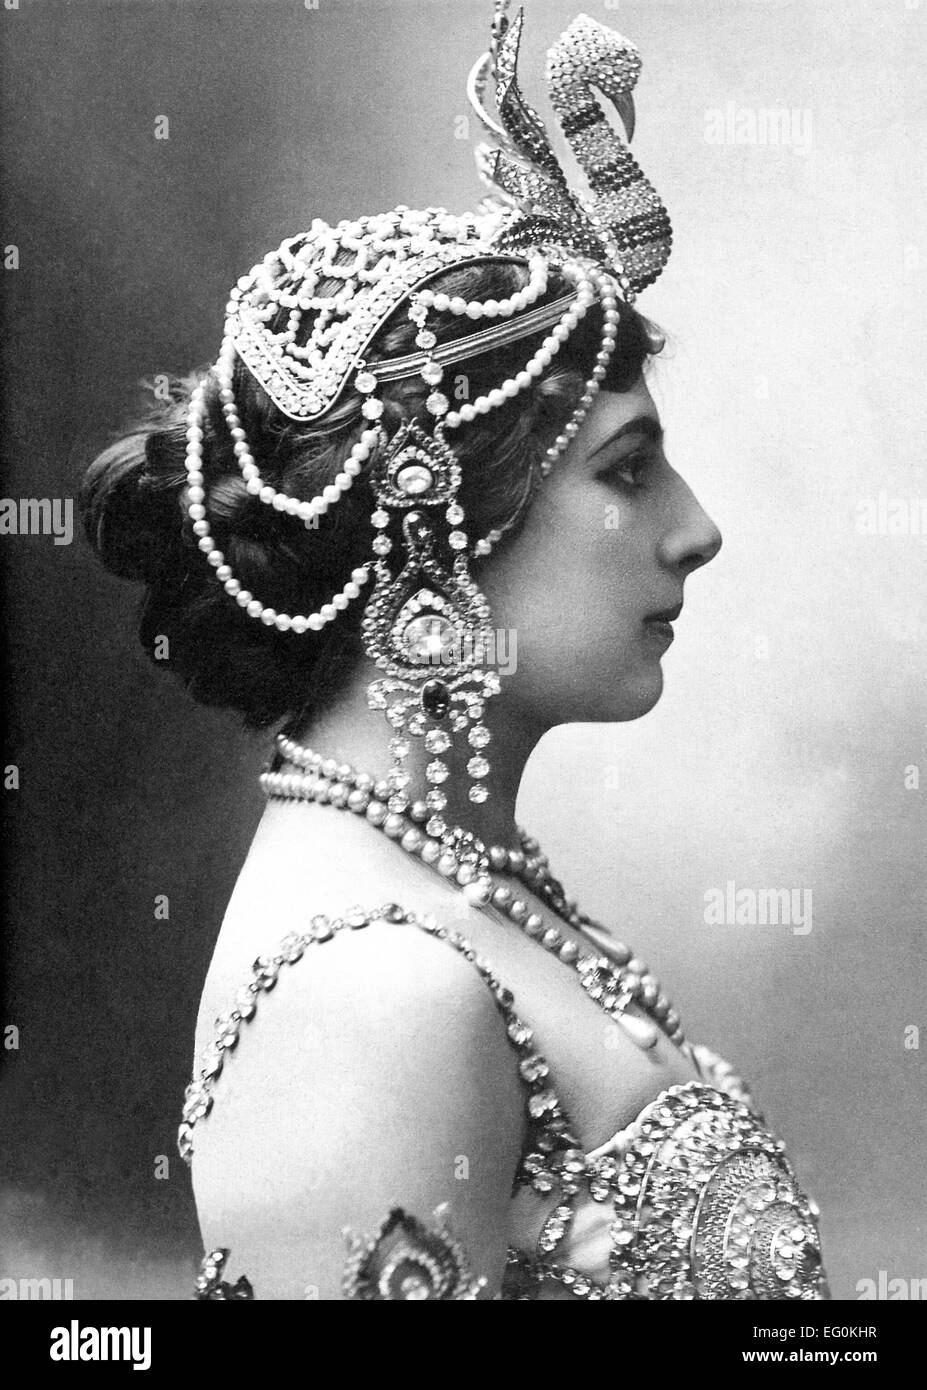 MATA HARI (1876-1917) about 1906. Dutch exotic dancer and courtesan executed as a German spy - Stock Image